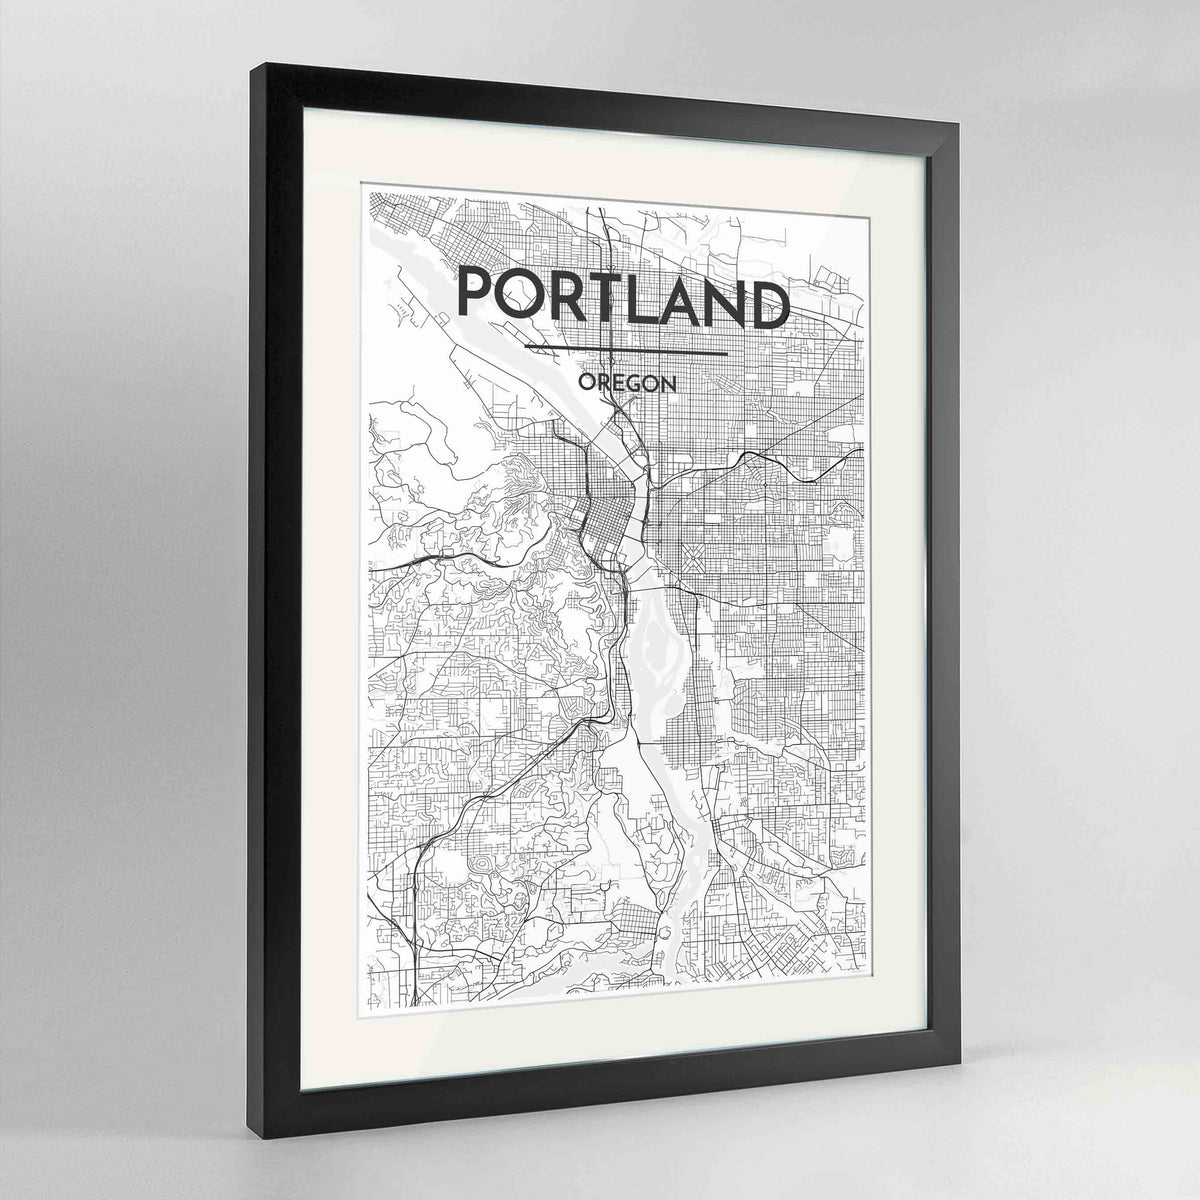 "Framed Portland - Oregon Map Art Print 24x36"" Contemporary Black frame Point Two Design Group"